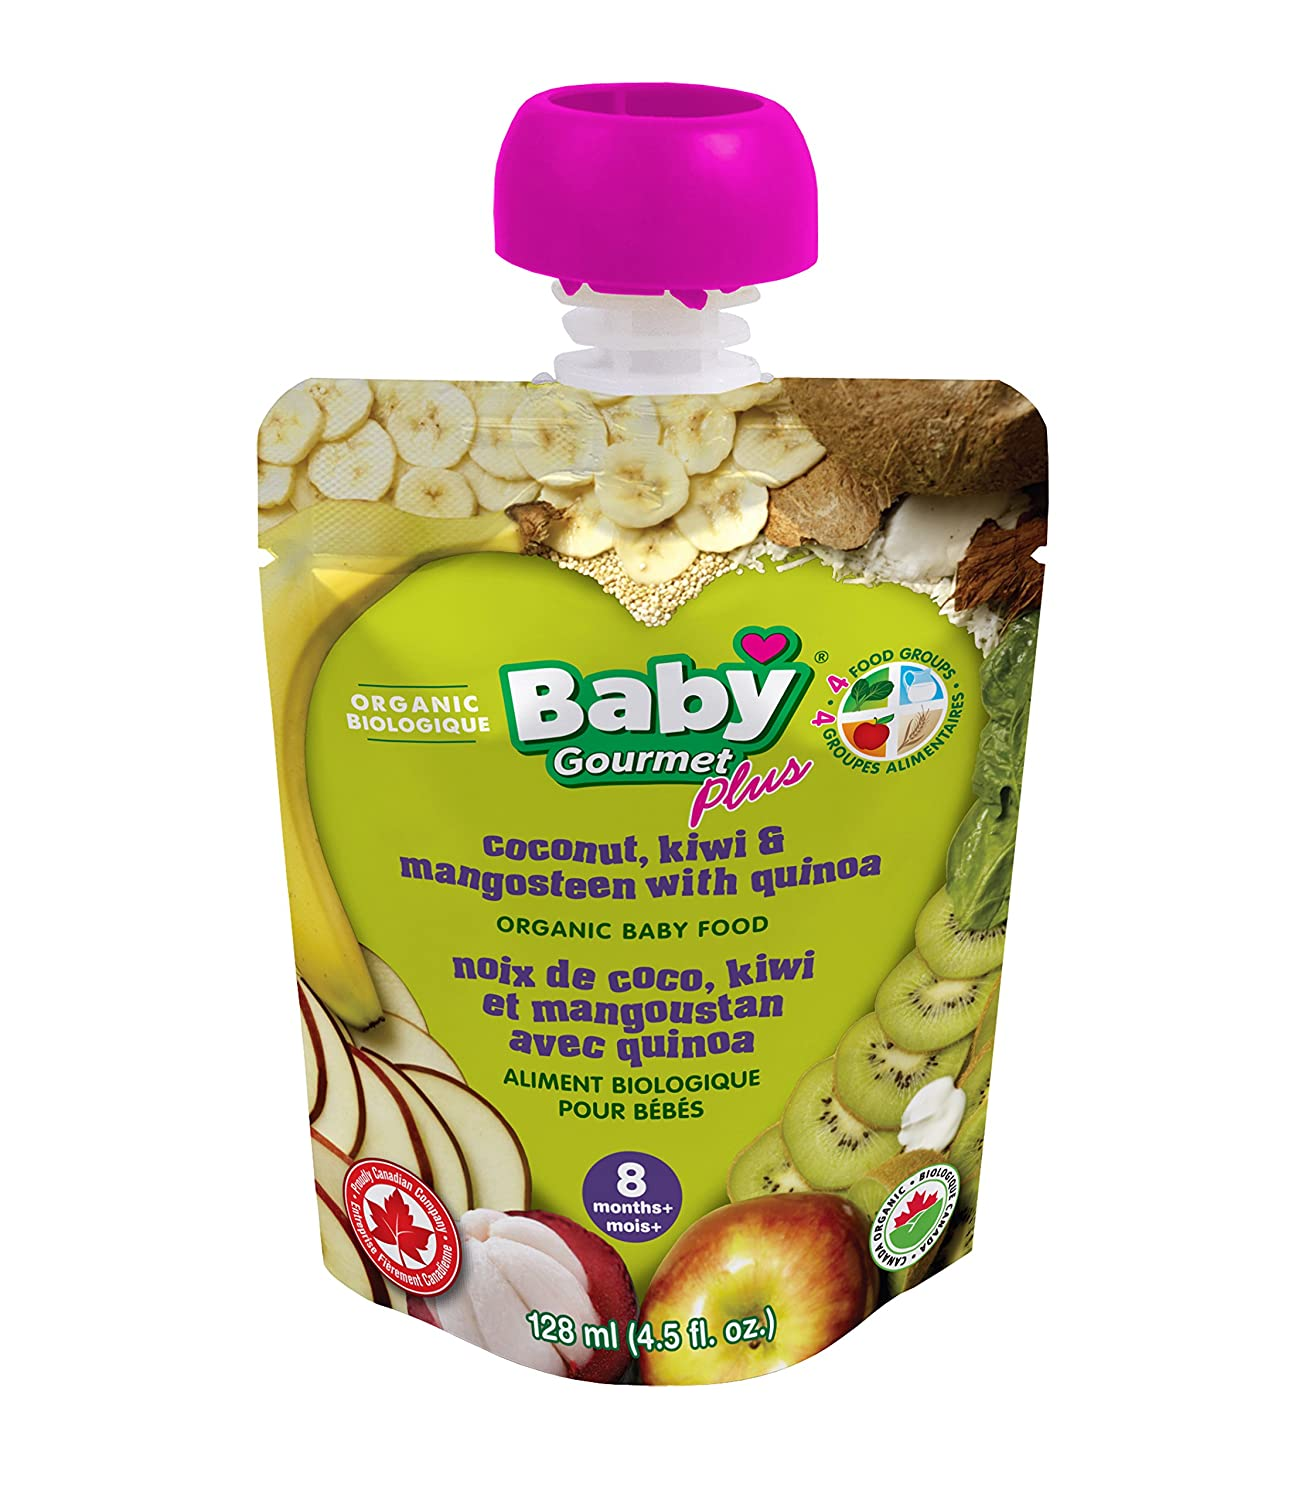 Baby Gourmet PLUS Coconut Kiwi & Mangosteen with Quinoa (Pack of 12) COKM4BGCSCD0012